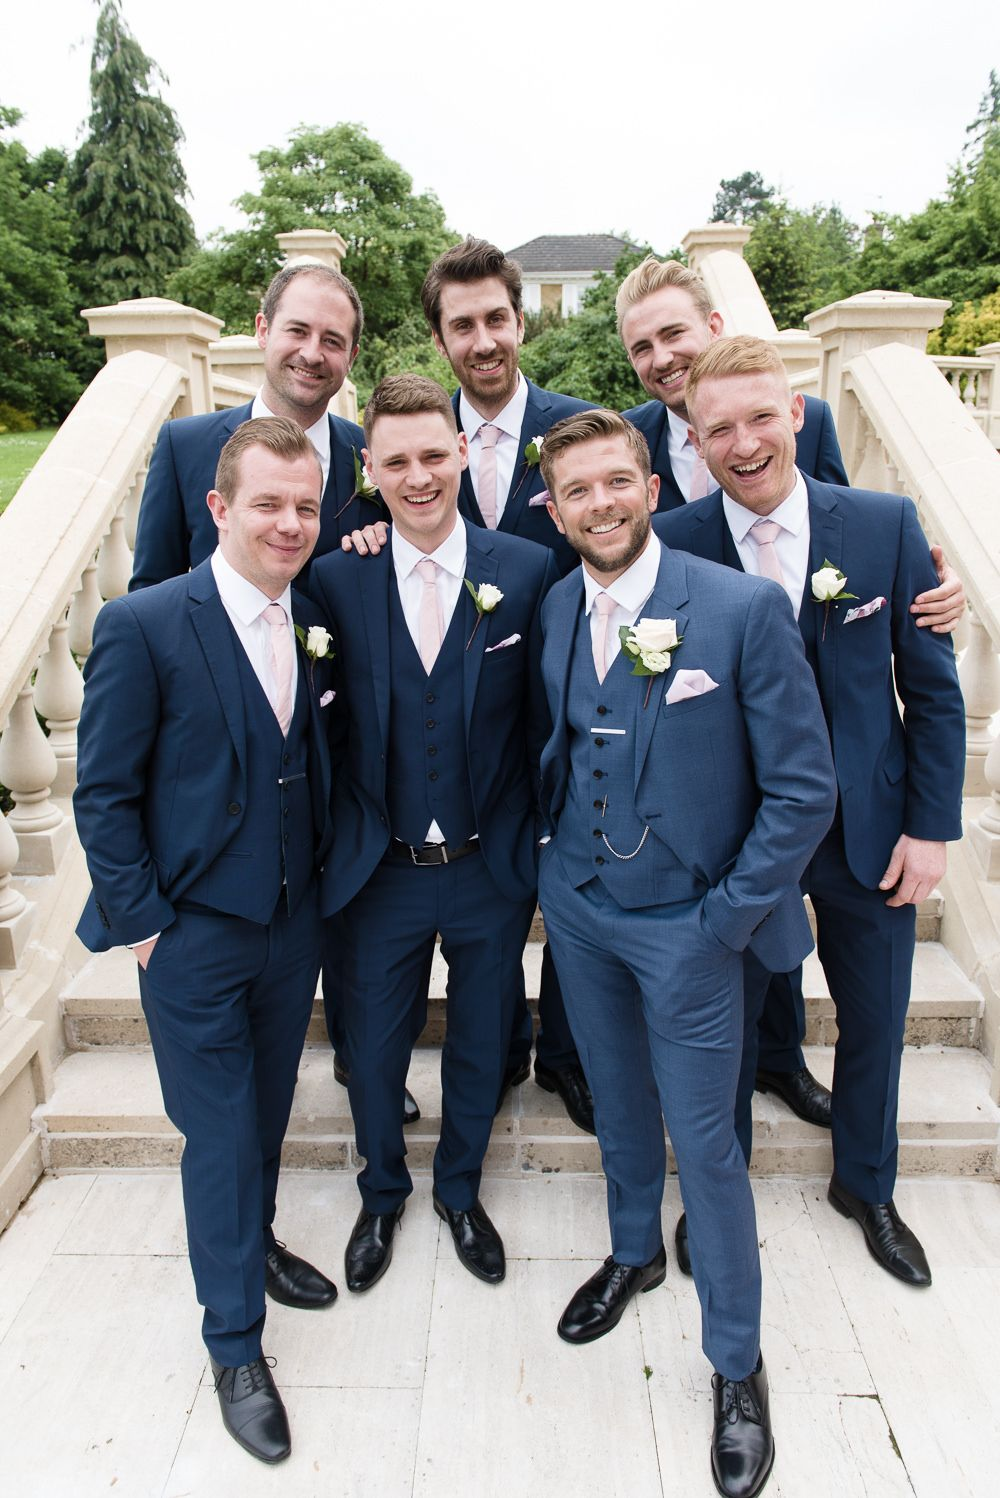 732130de7 Groom in Reiss Suit | Groomsmen in Ted Baker Suits - Julie Michaelsen  Photography | Classic